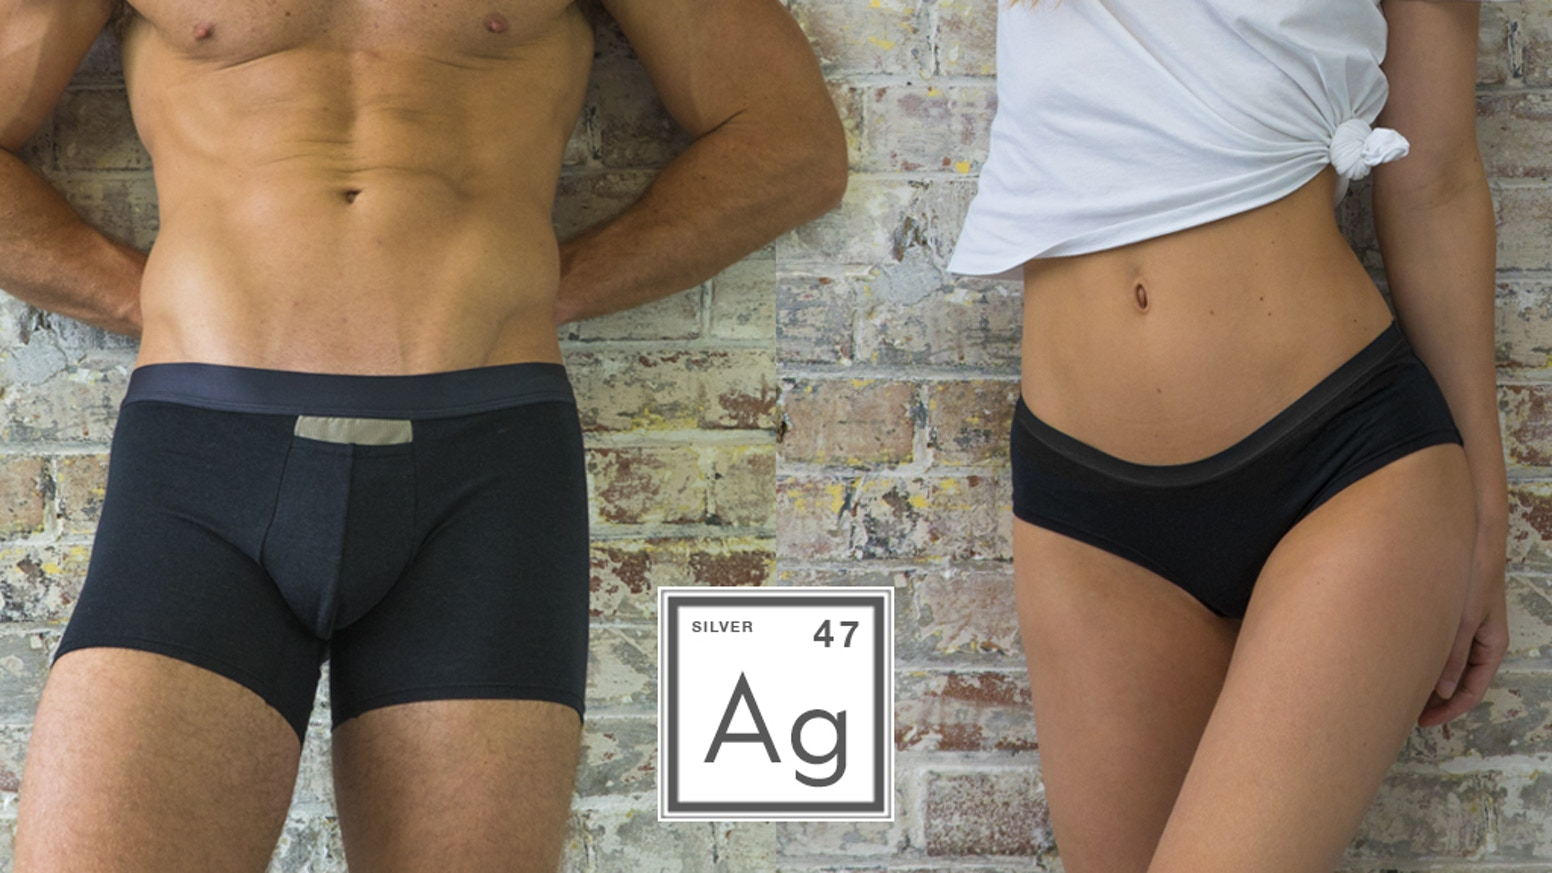 Self-cleaning underwear made from pure silver that keep your downstairs free from odour and bacteria.